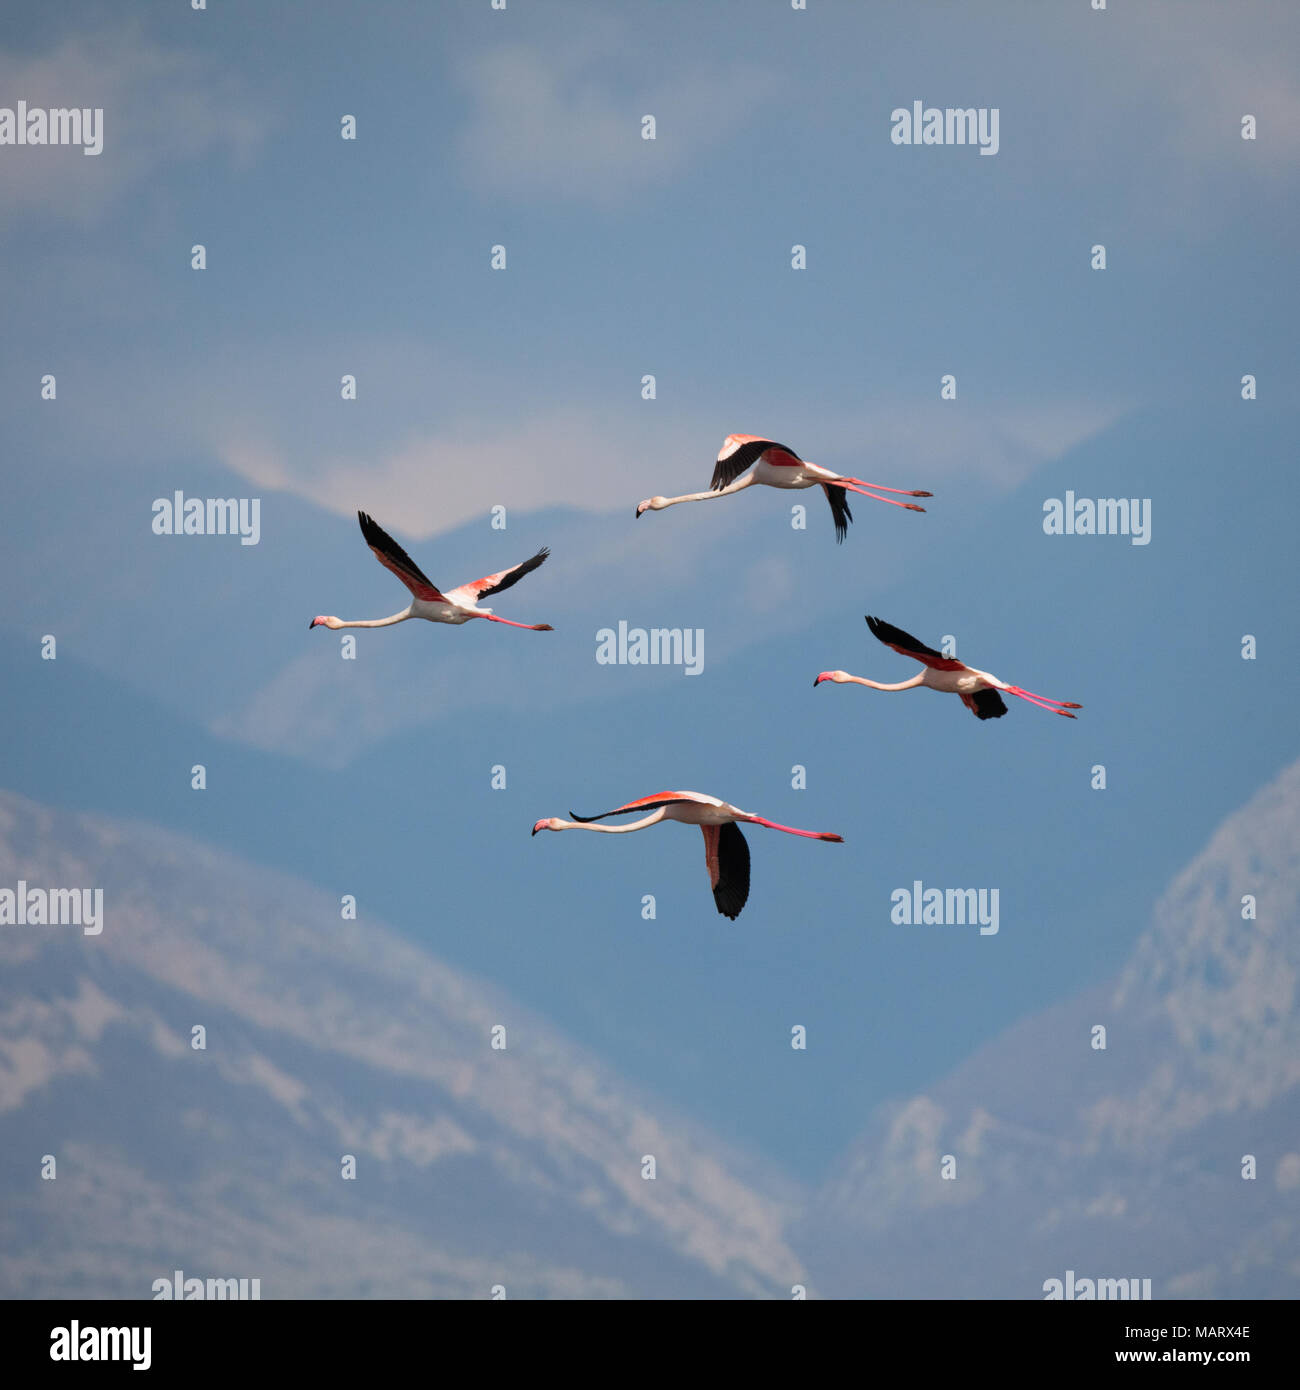 Greater flamingo, Phoenicopterus roseus - Stock Image